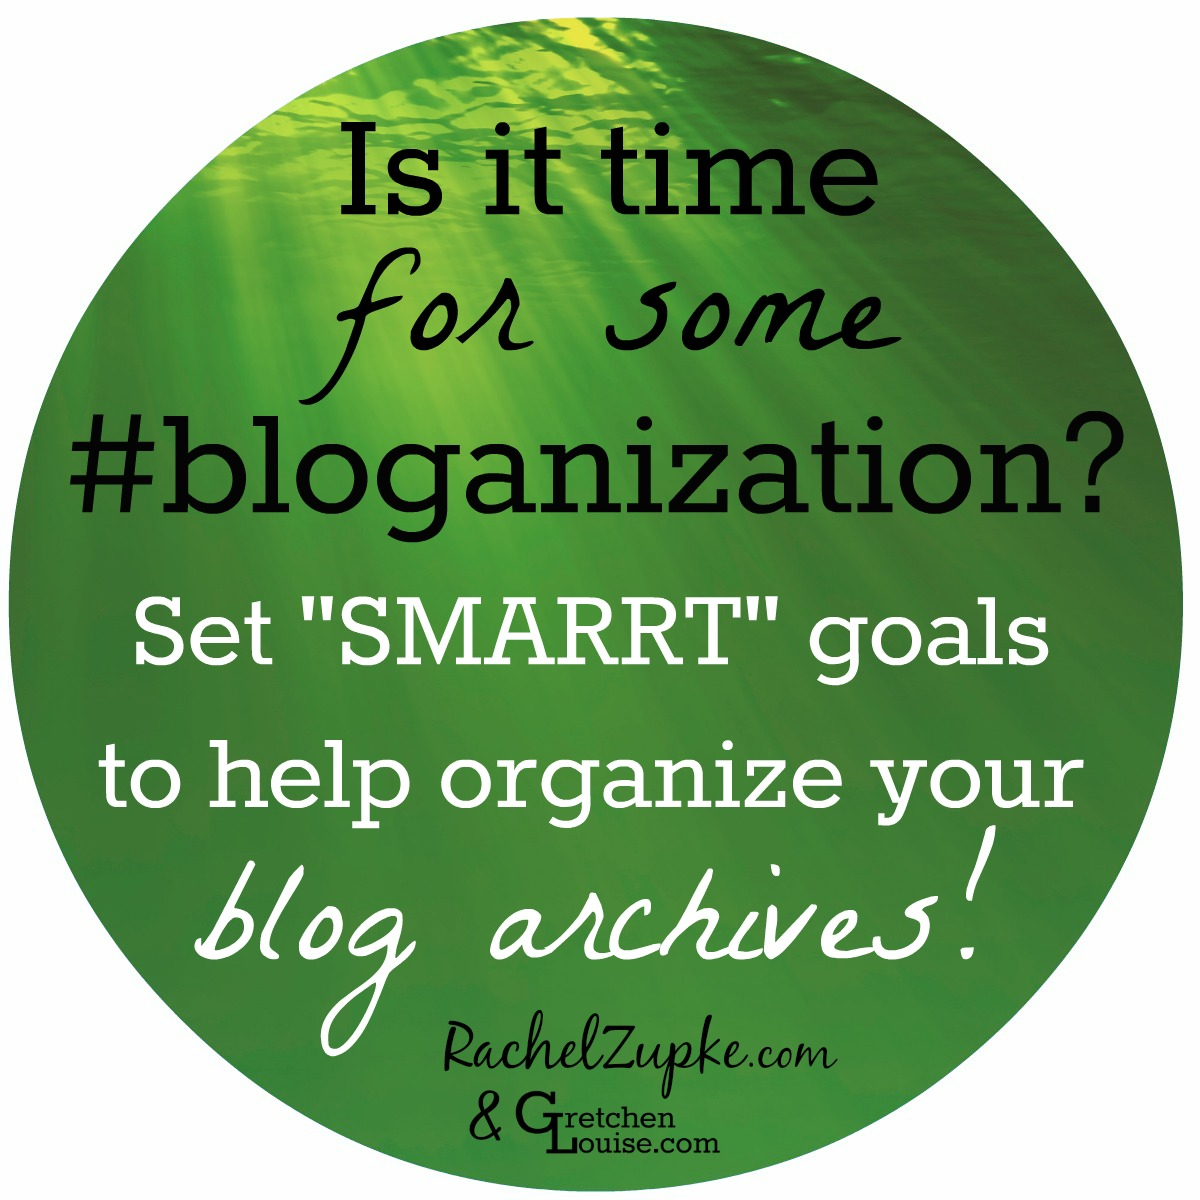 Do your blog archives need some #bloganization?